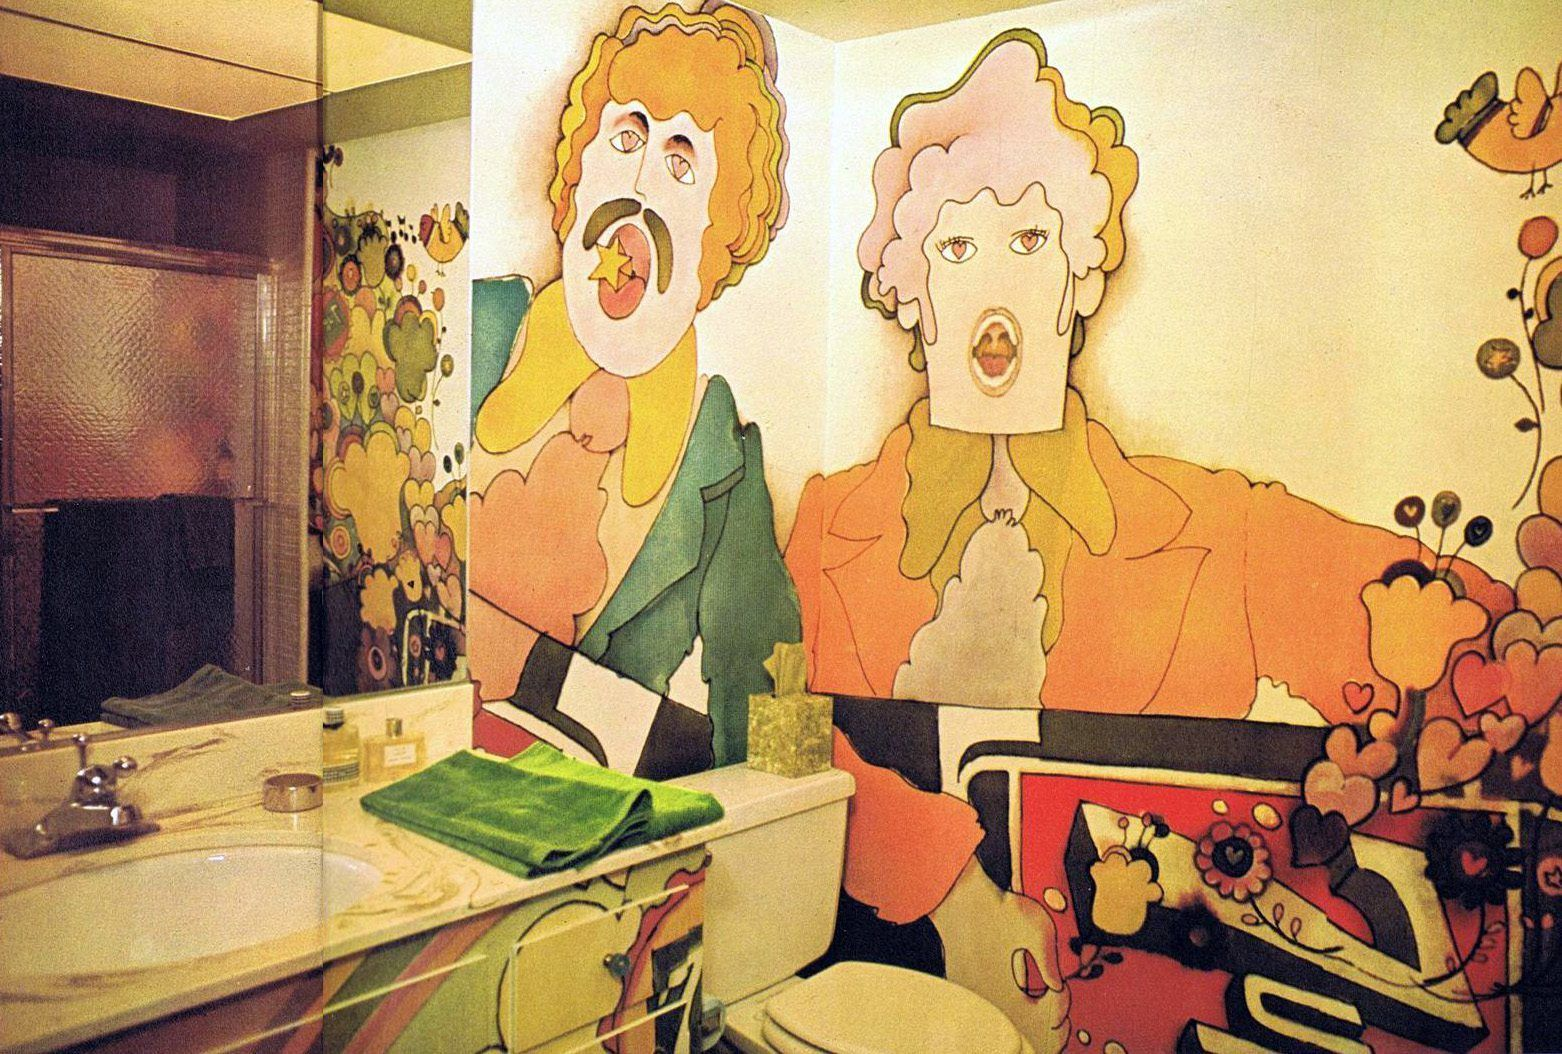 Magical Mystery Dcor Trippy Home Interiors Of The 60s And 70s ...